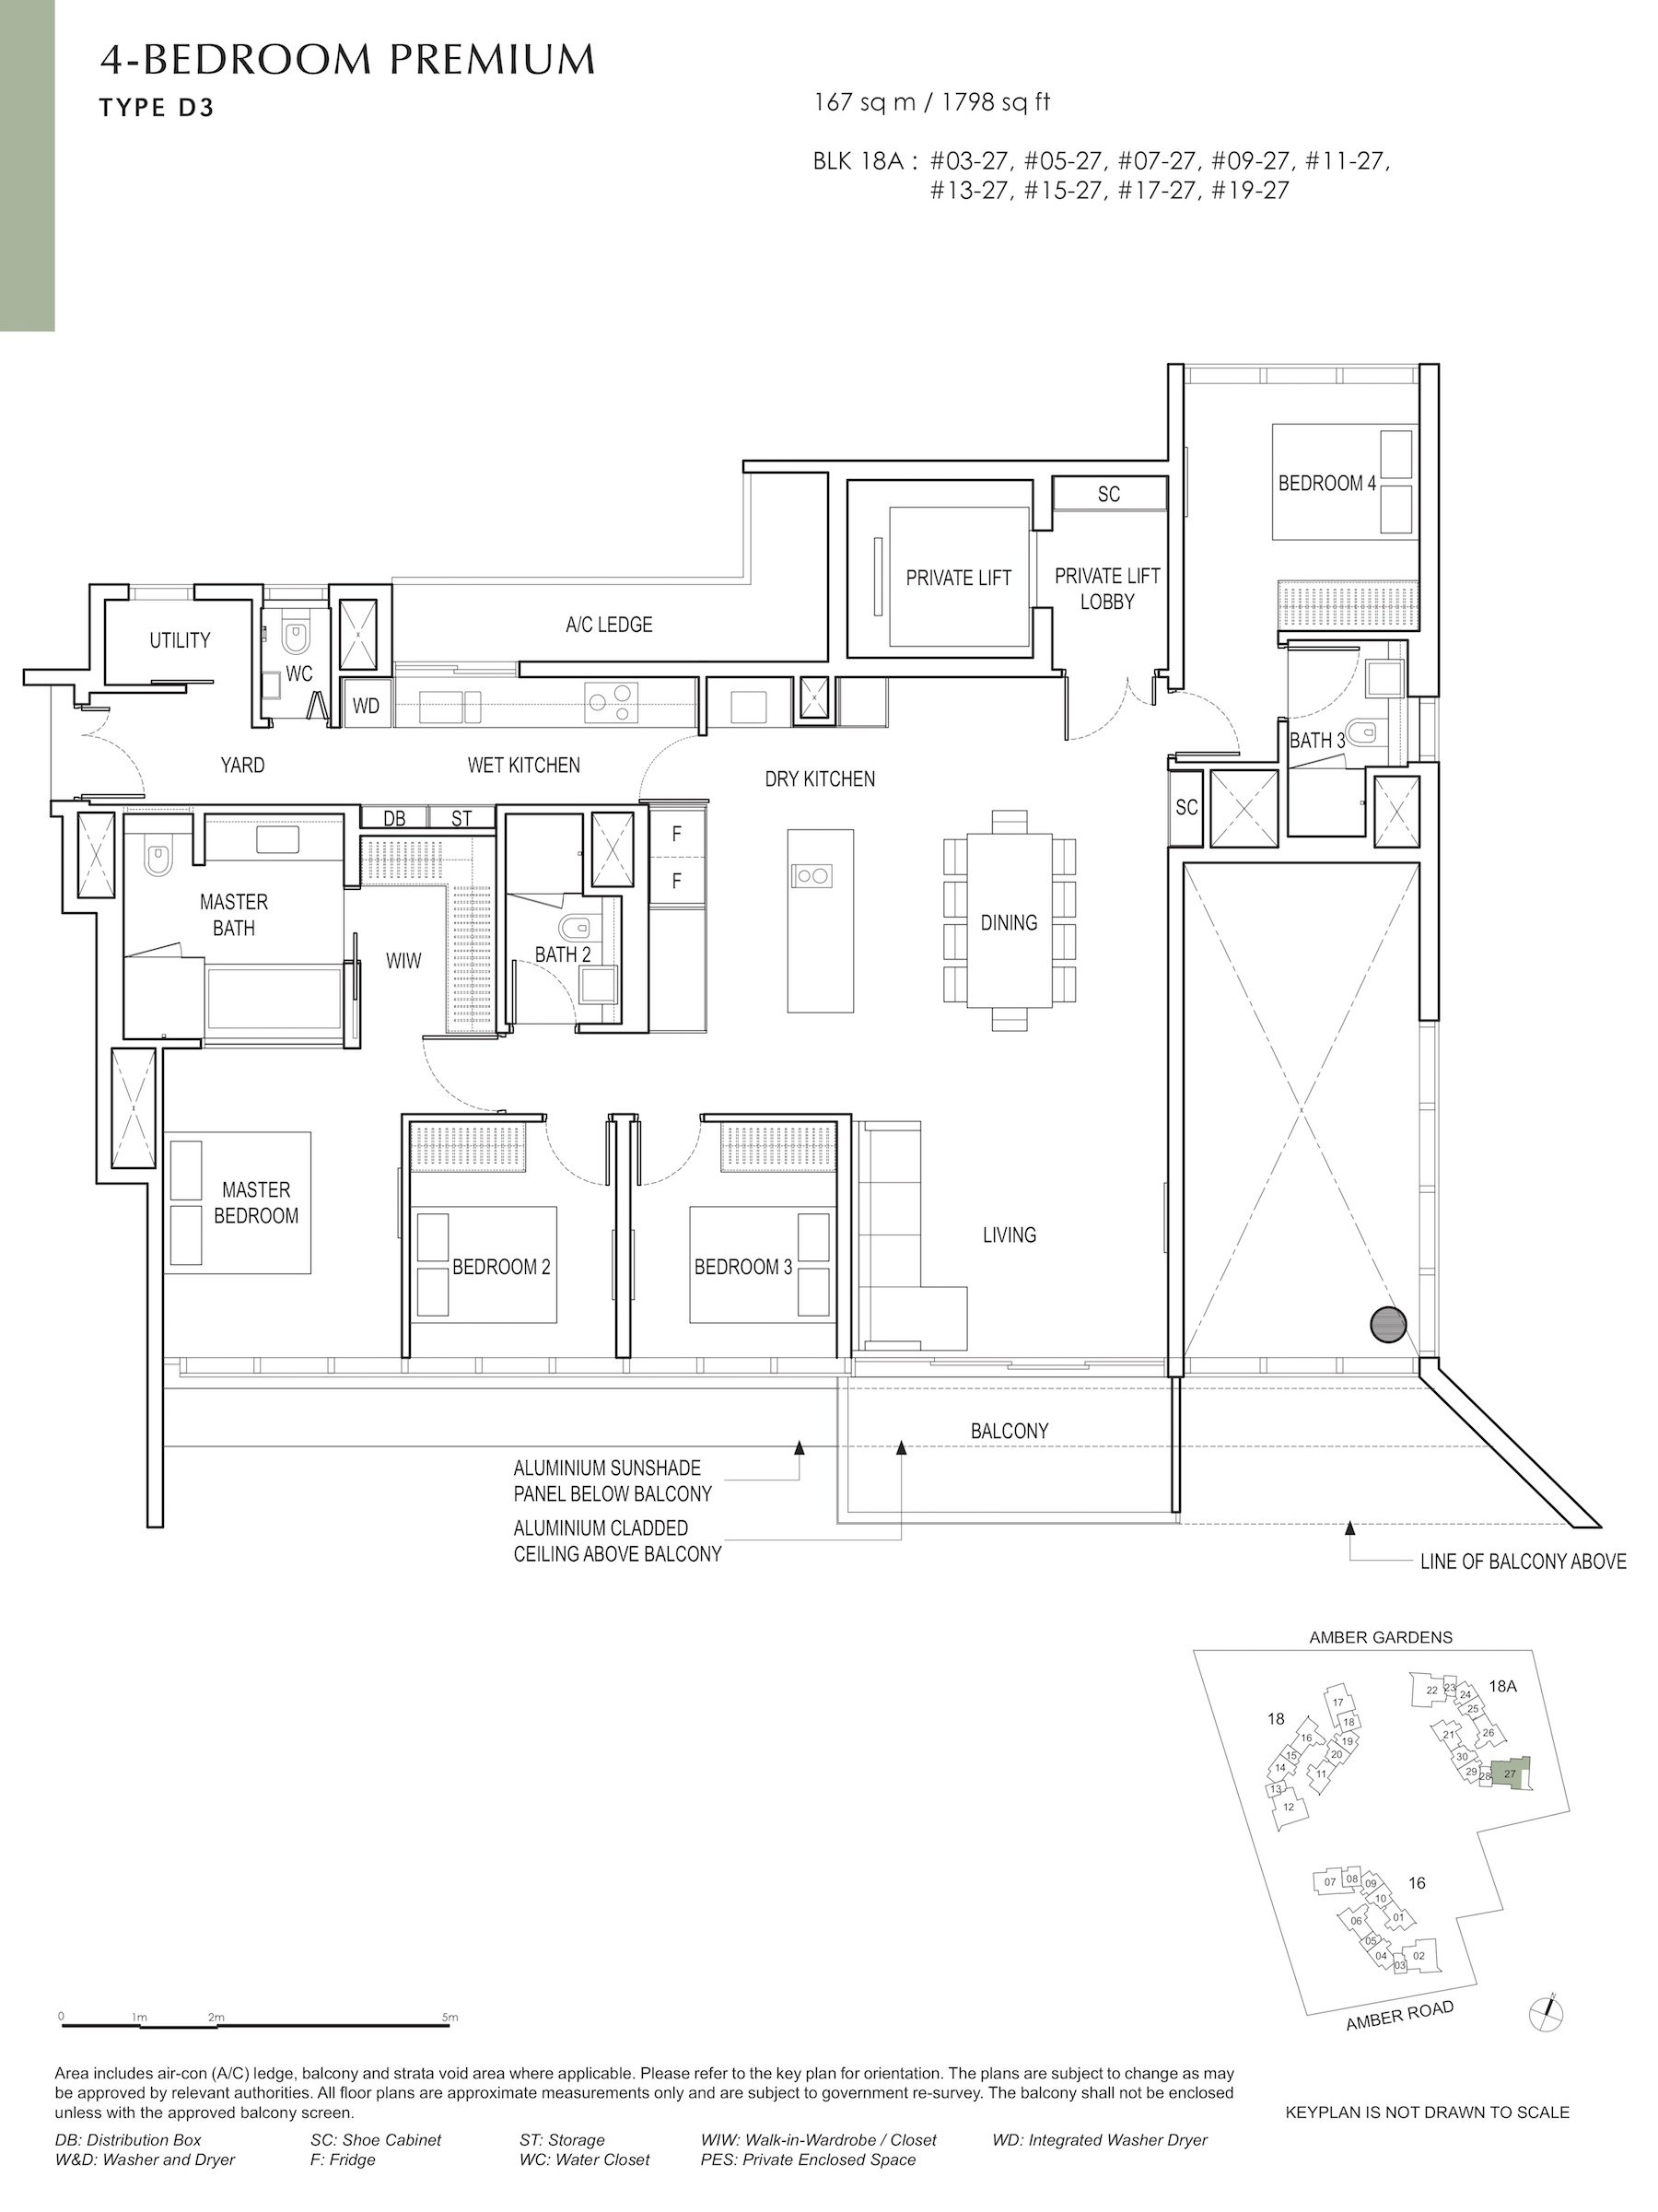 Amber Park 安铂苑 floor plan 4 bedroom premium 4卧房优质 D3